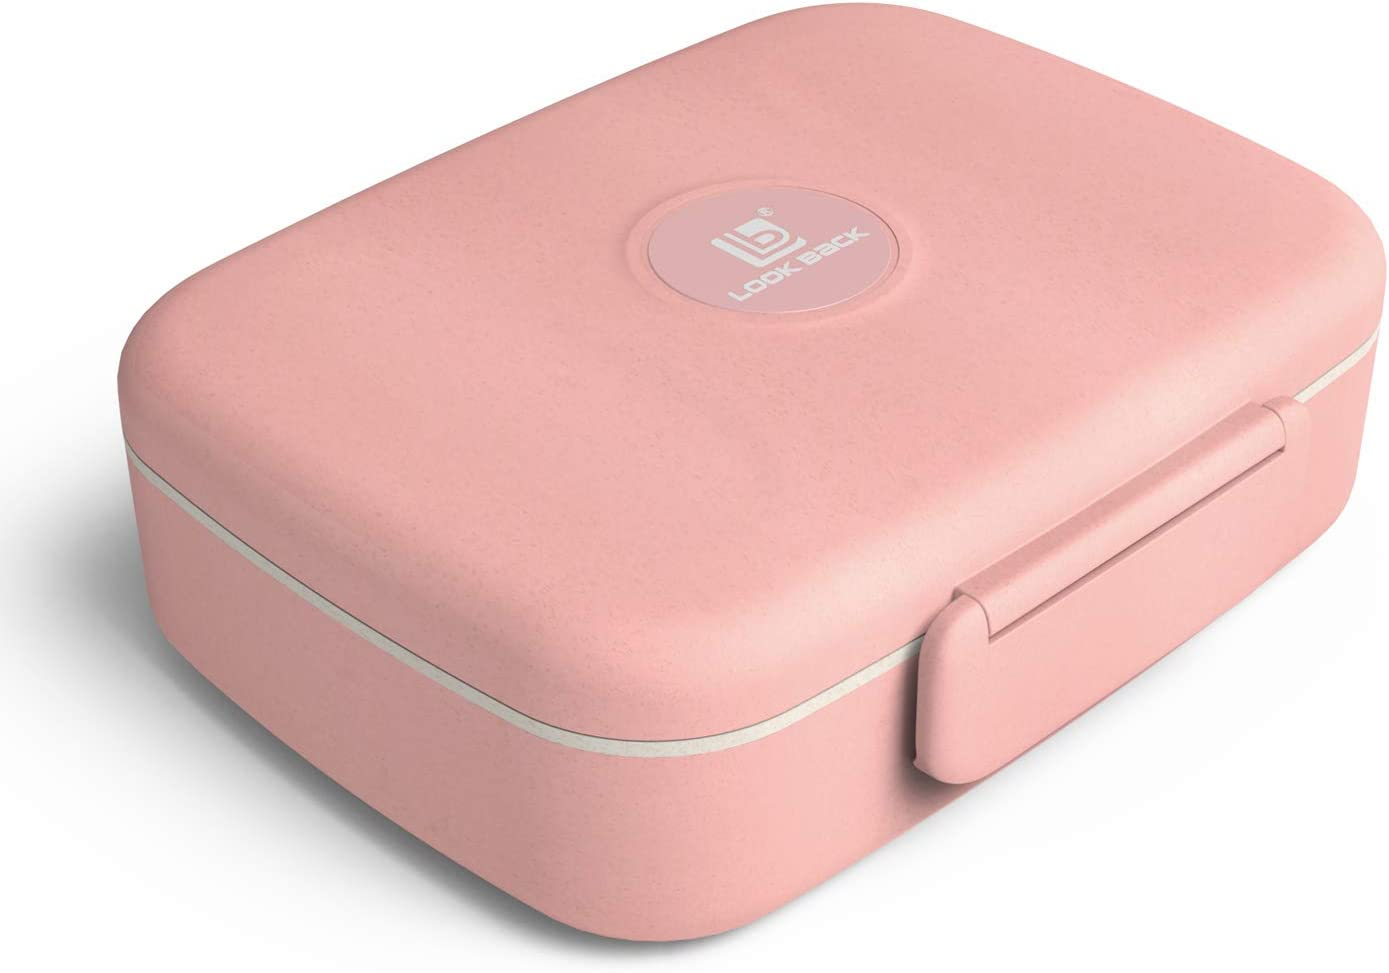 Lunch Box for Kids and Adults Wheat Straw Food Storage - 5 Compartments, Leak Proof, Microwave and Dishwasher Safe, BPA-Free, Bento Box, Lunch Container with Spoon and Fork (Pink)